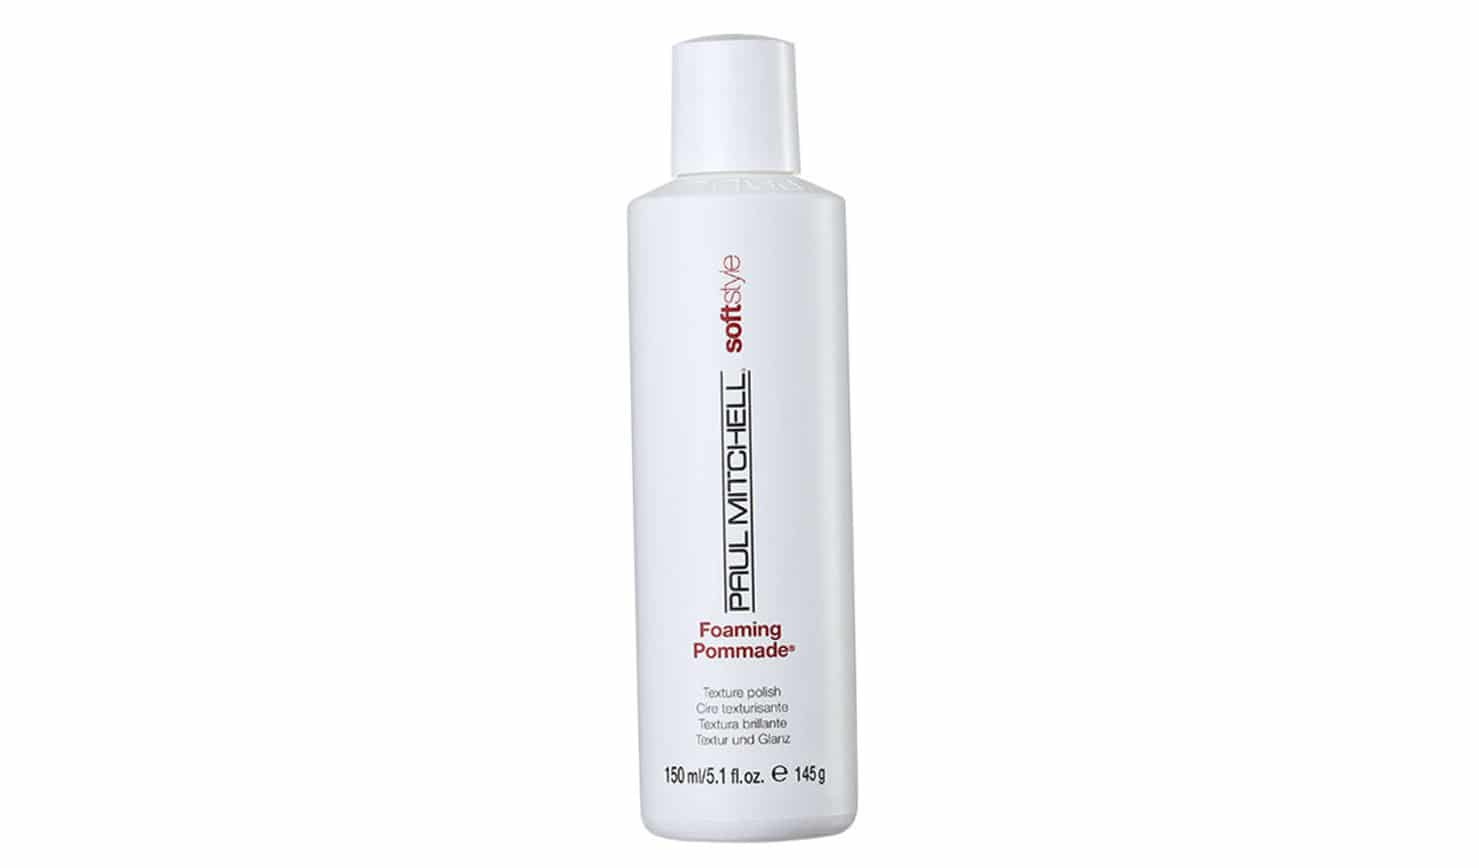 paul-mitchell-soft-style-foaming-pommade-tratamento-finalizador-pomada-cabelo-150ml-813205 copy